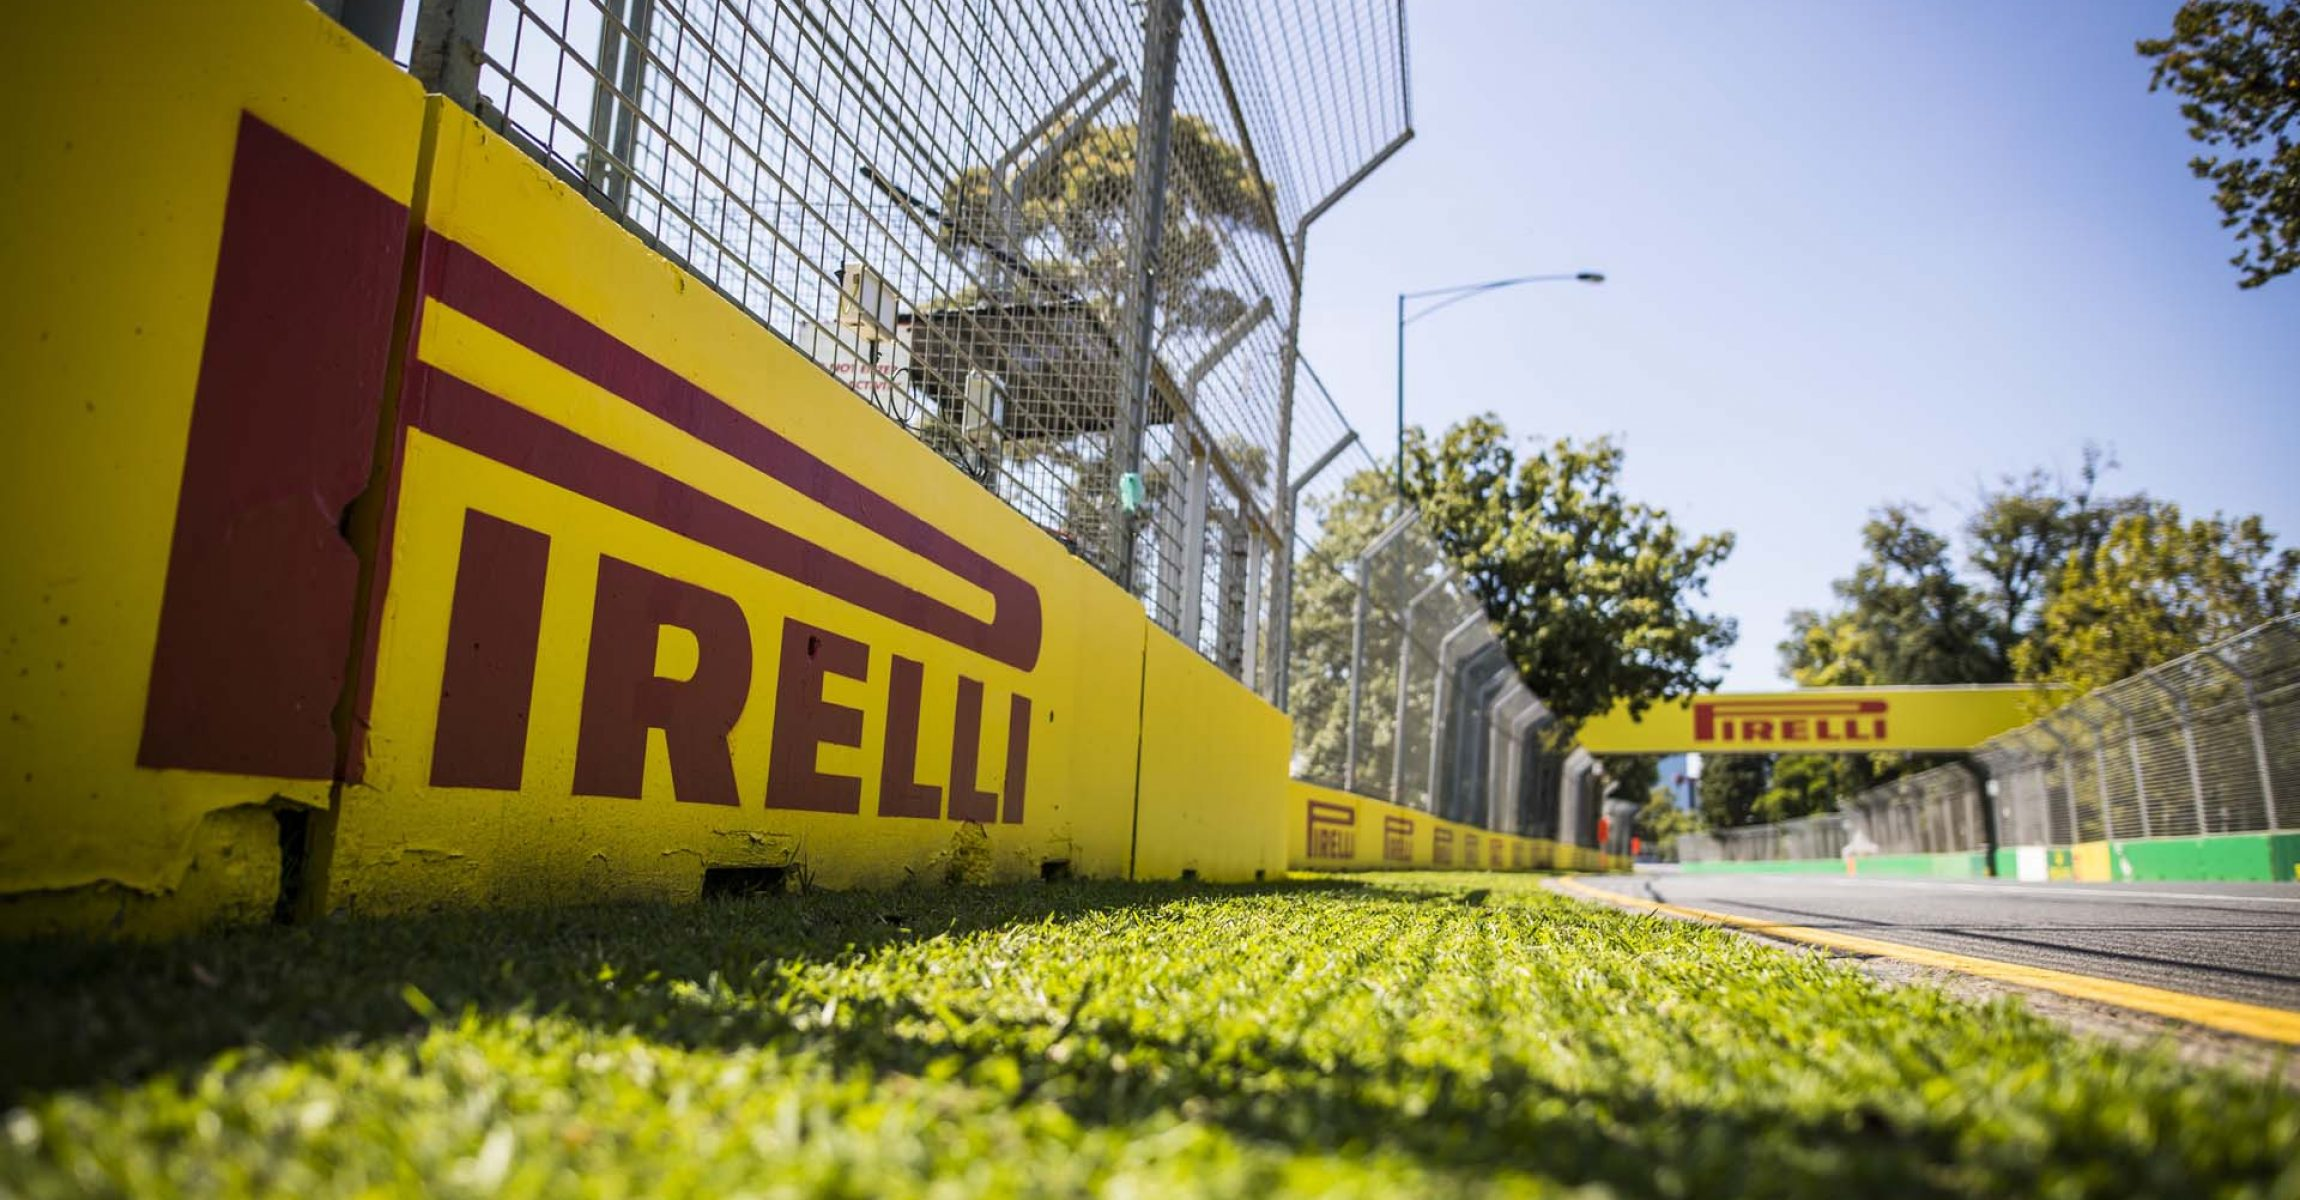 MARCH 11: Pirelli branding around the track during the Australian GP on March 11, 2020. (Photo by Sam Bloxham / LAT Images)